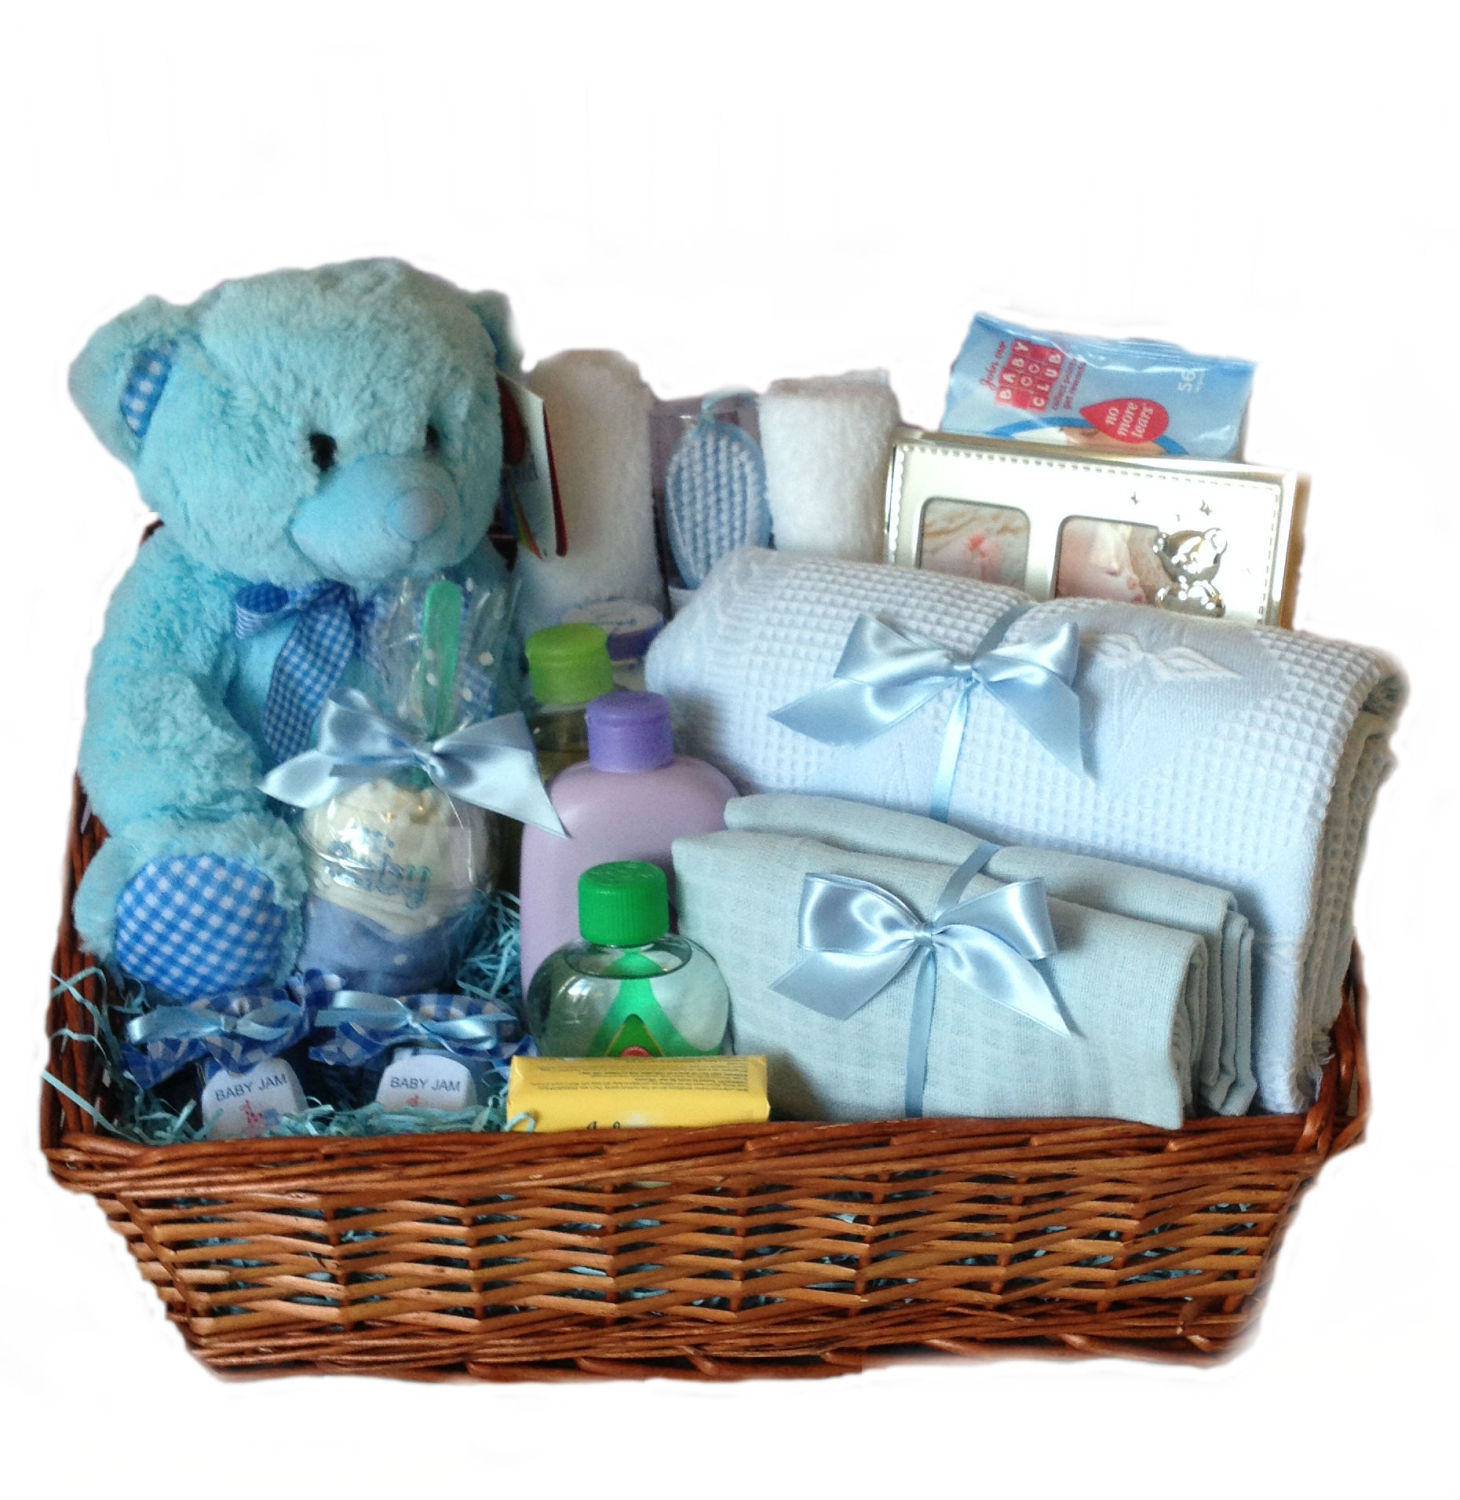 Baby hamper new baby gift baby boy baby gift napy cake and baby baby hamper new baby gift baby boy baby gift napy cake and baby hampers delivered in ireland negle